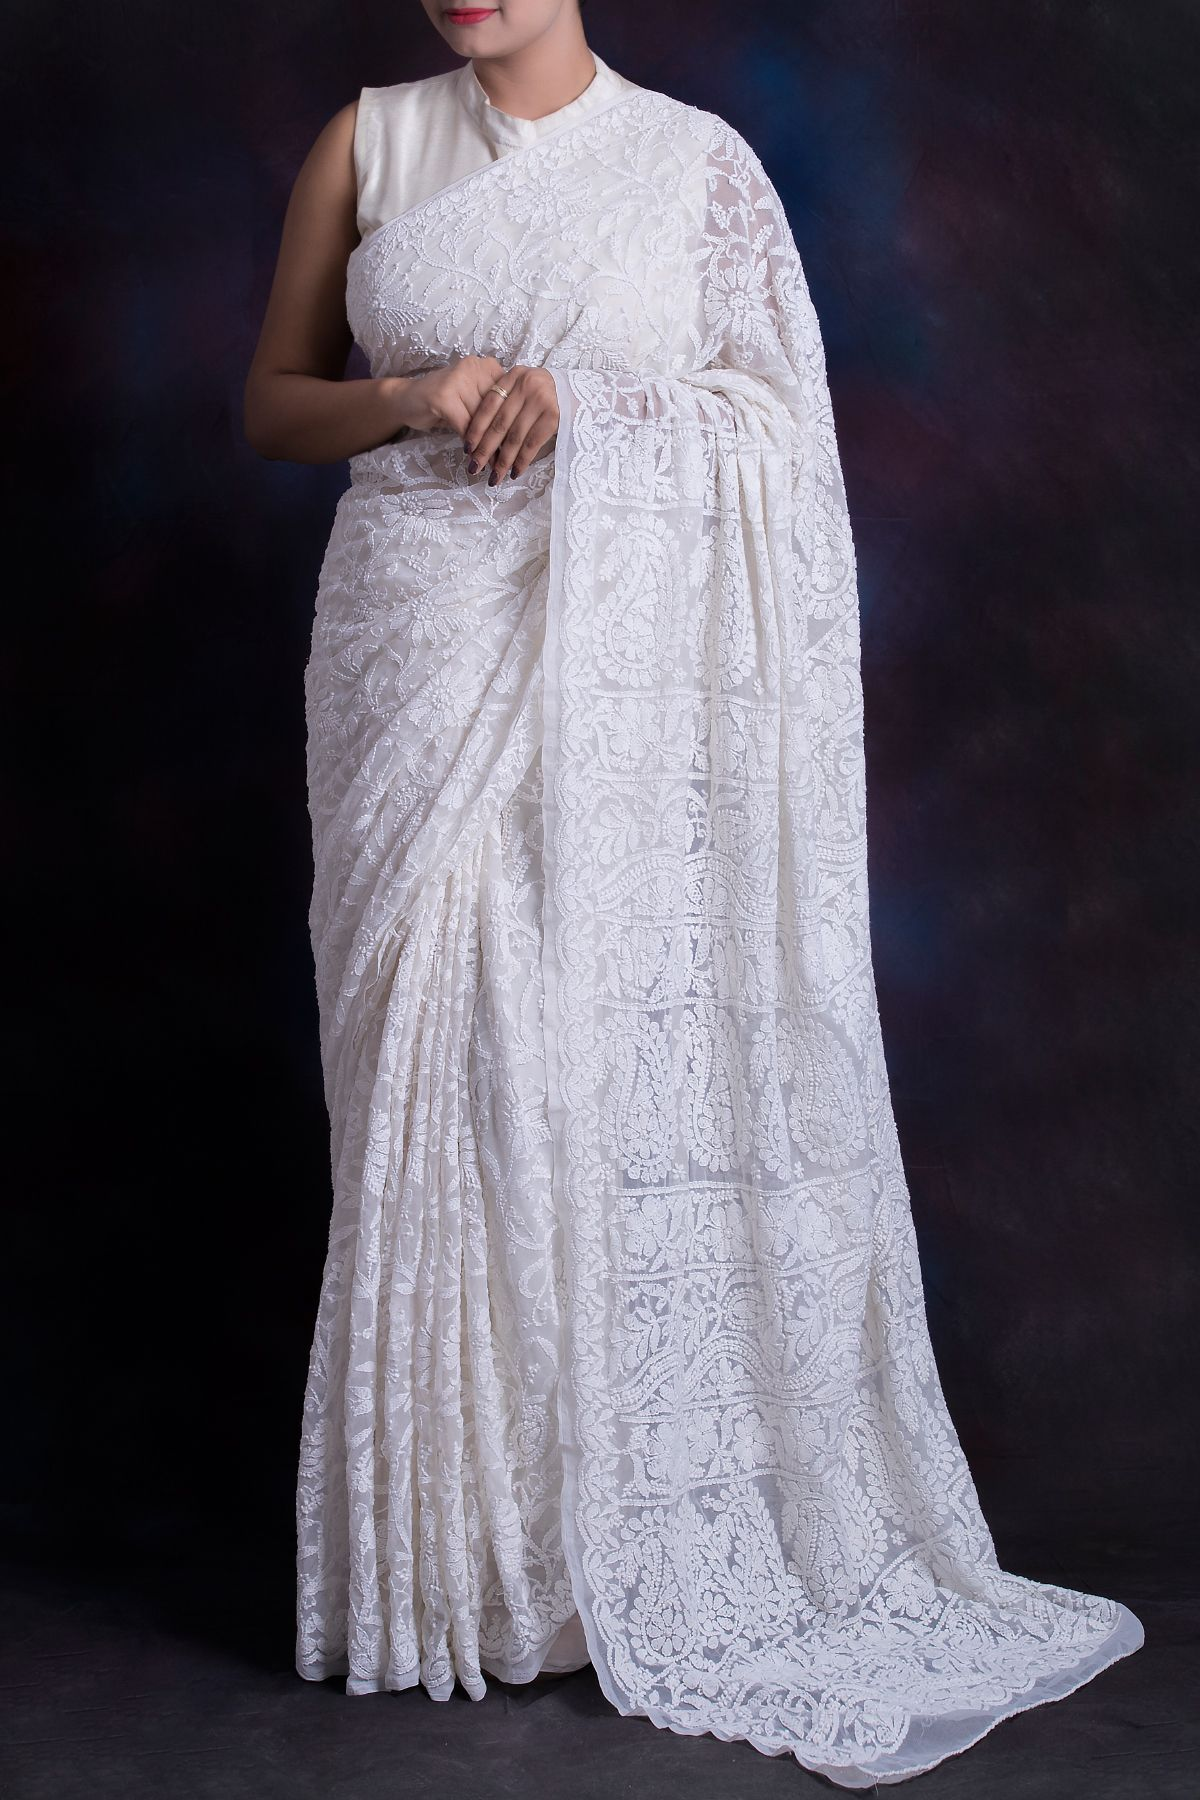 Pure White Chikankari lucknowi saree with elegant hand embroidery all over